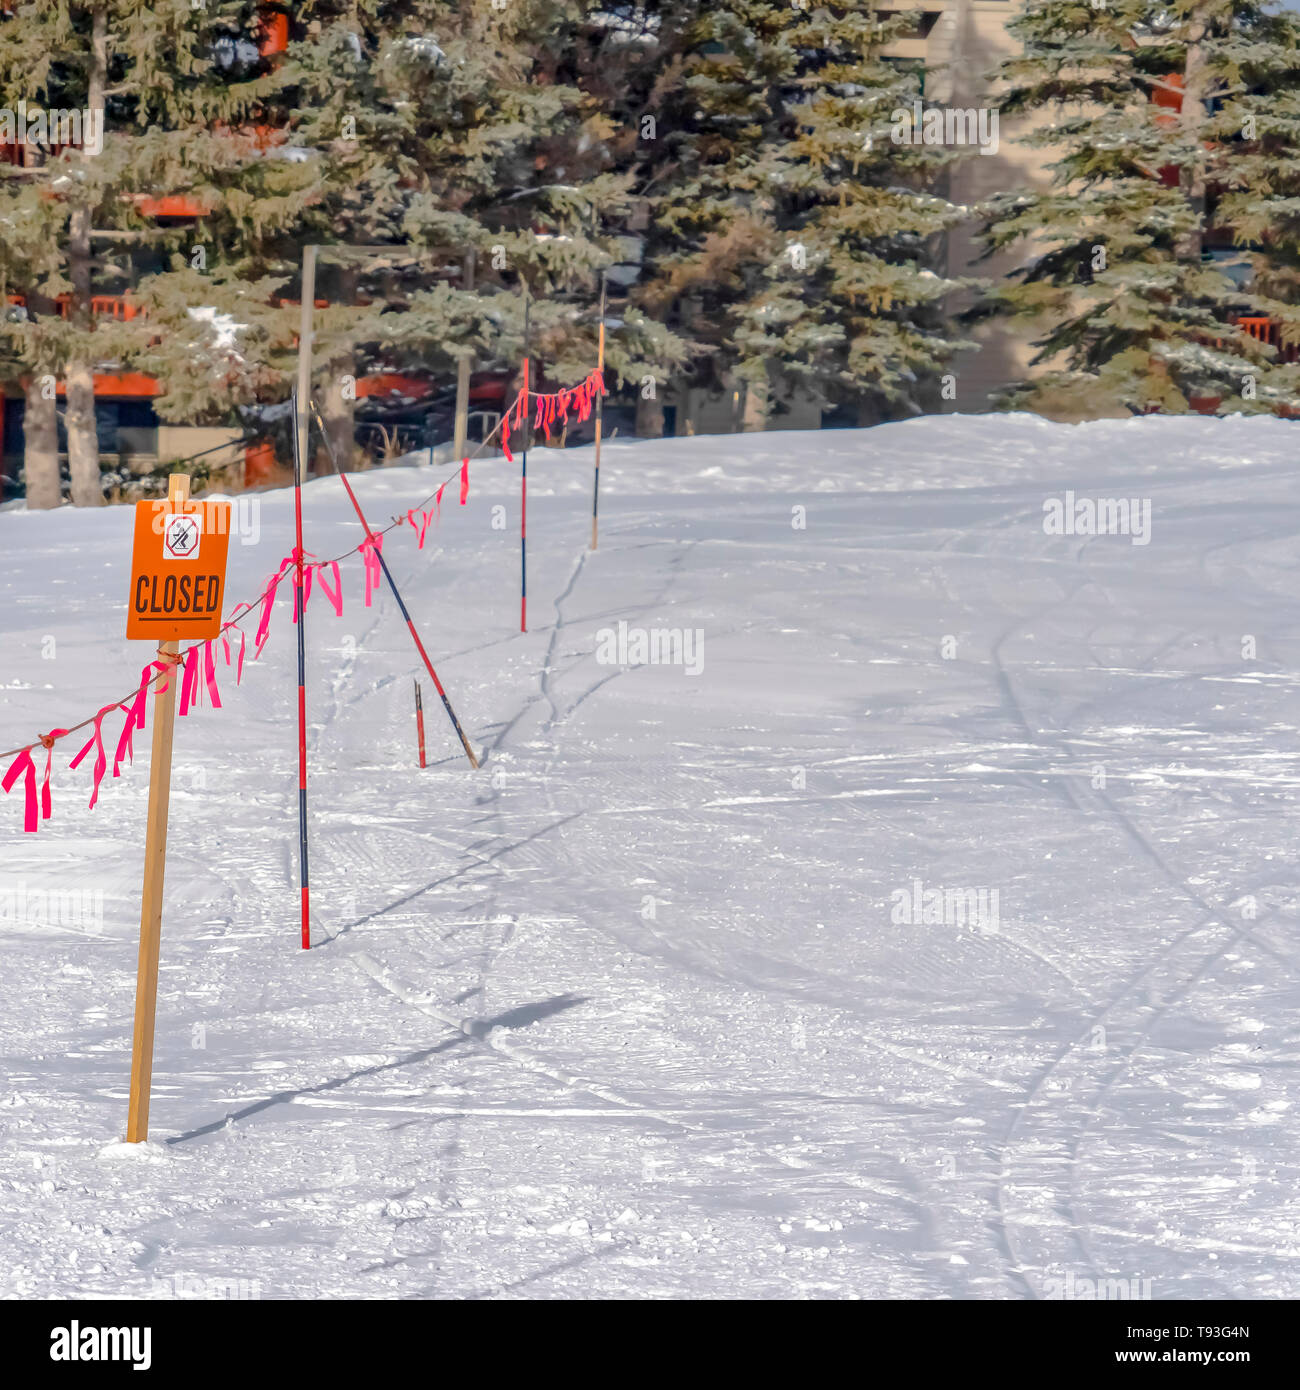 Closed sign and barricade against a ground covered with dense snow in Park City - Stock Image